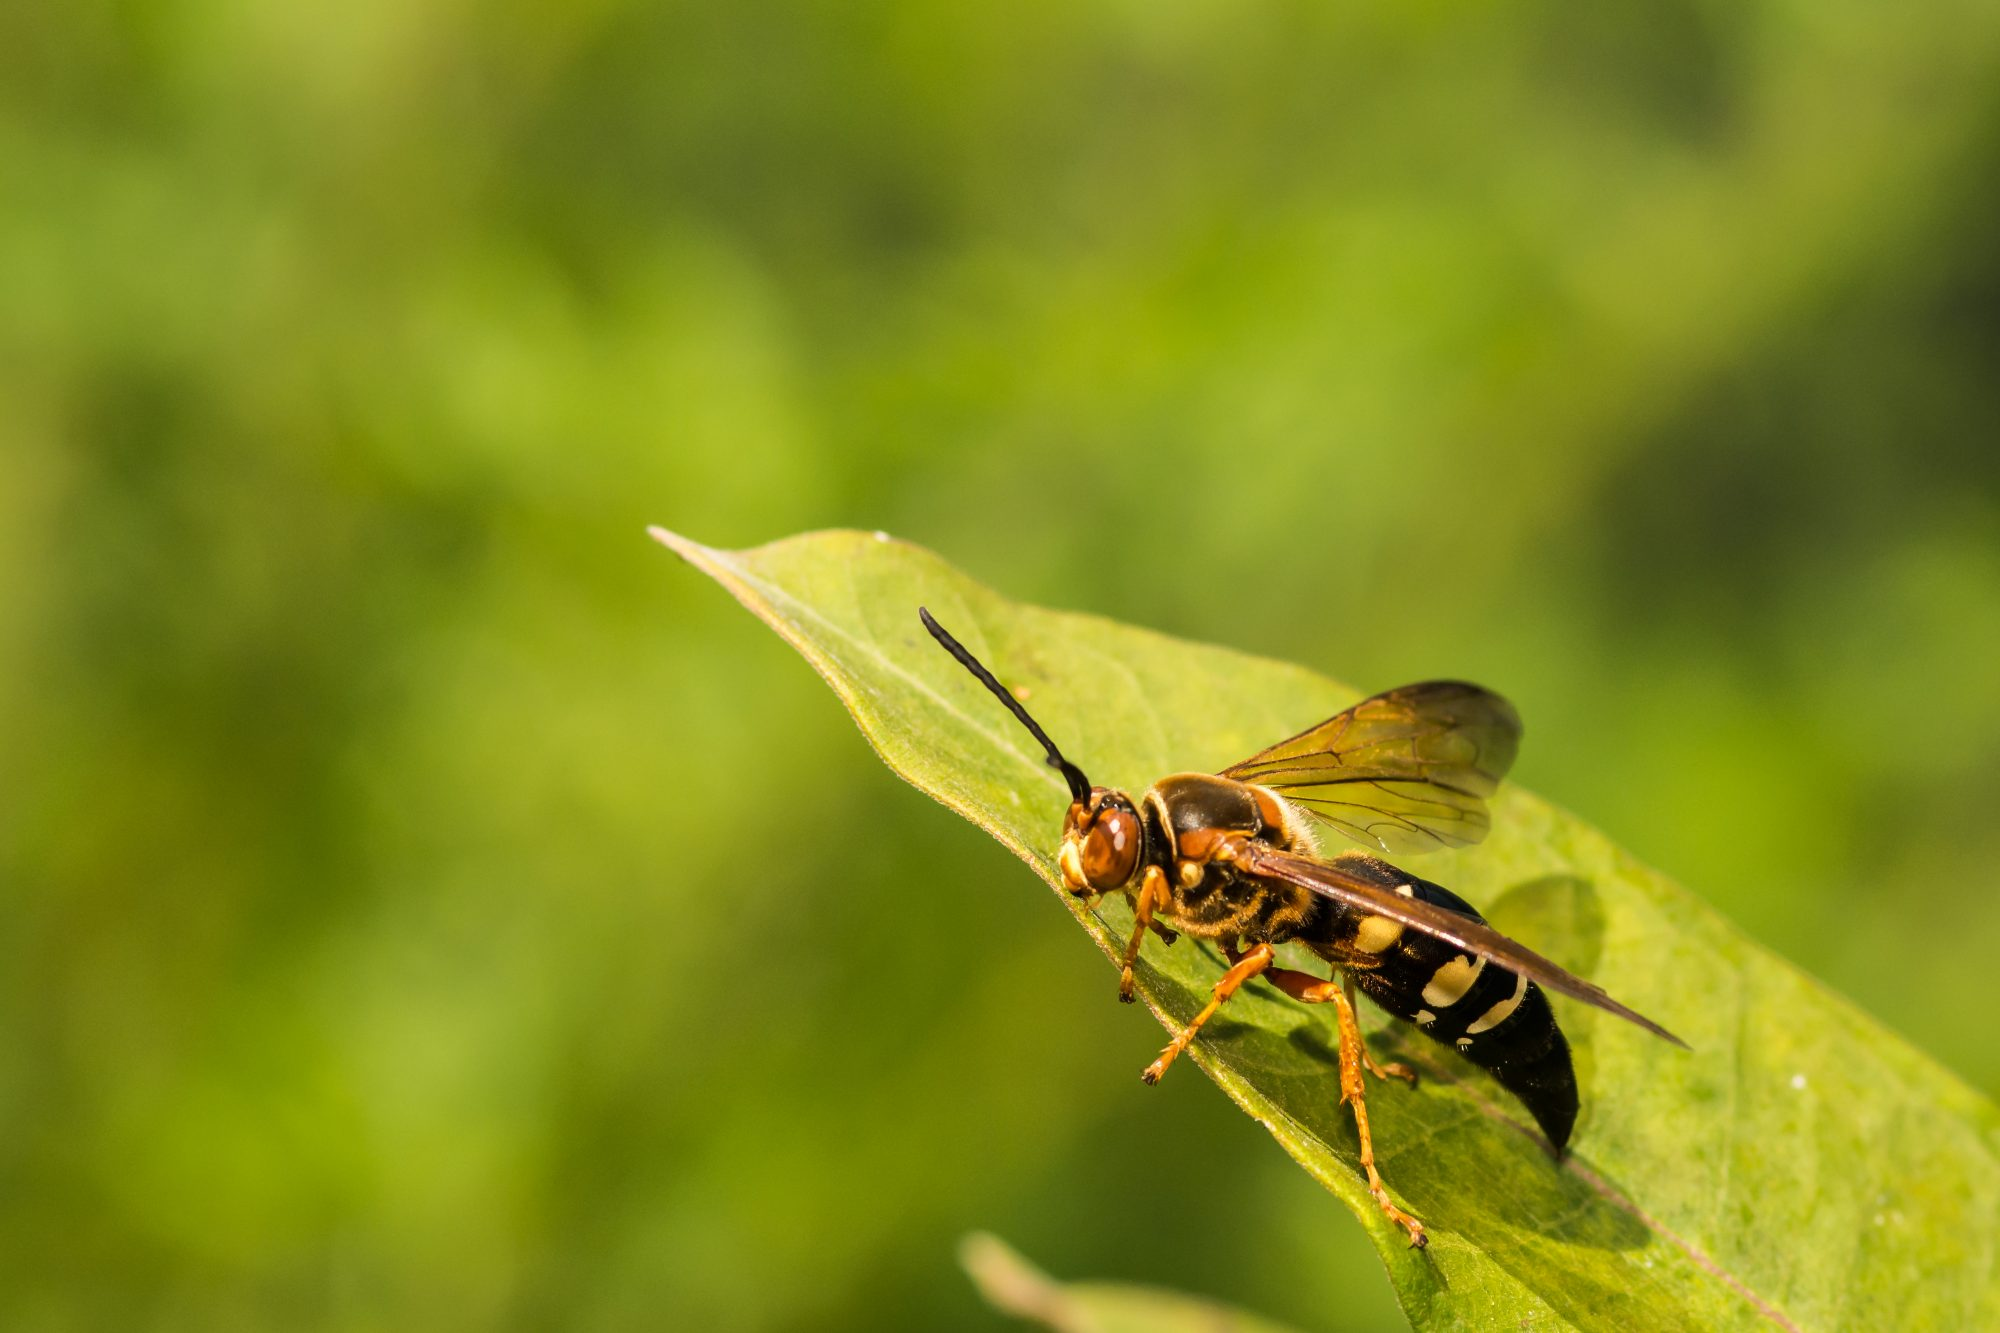 Eastern Cicada Killer Wasp